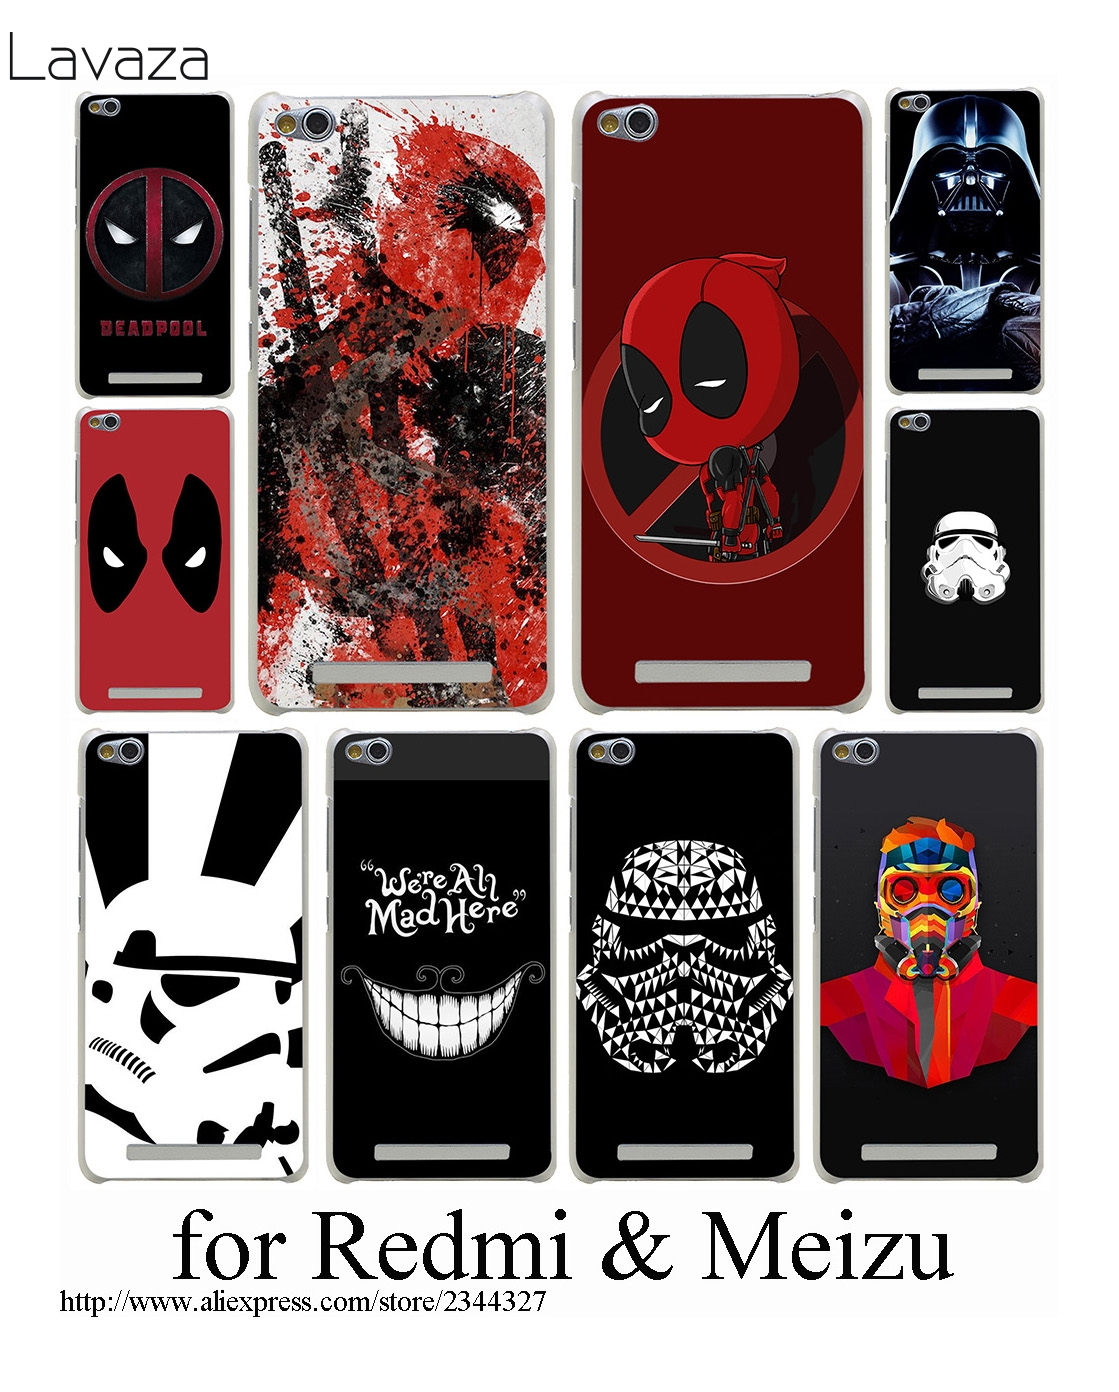 Lavaza Star Wars Stormtroop Hard case Meizu M3 M5 M6 not m5s M5c m3s mini U10 U20 Pro 6 7 artı fundas